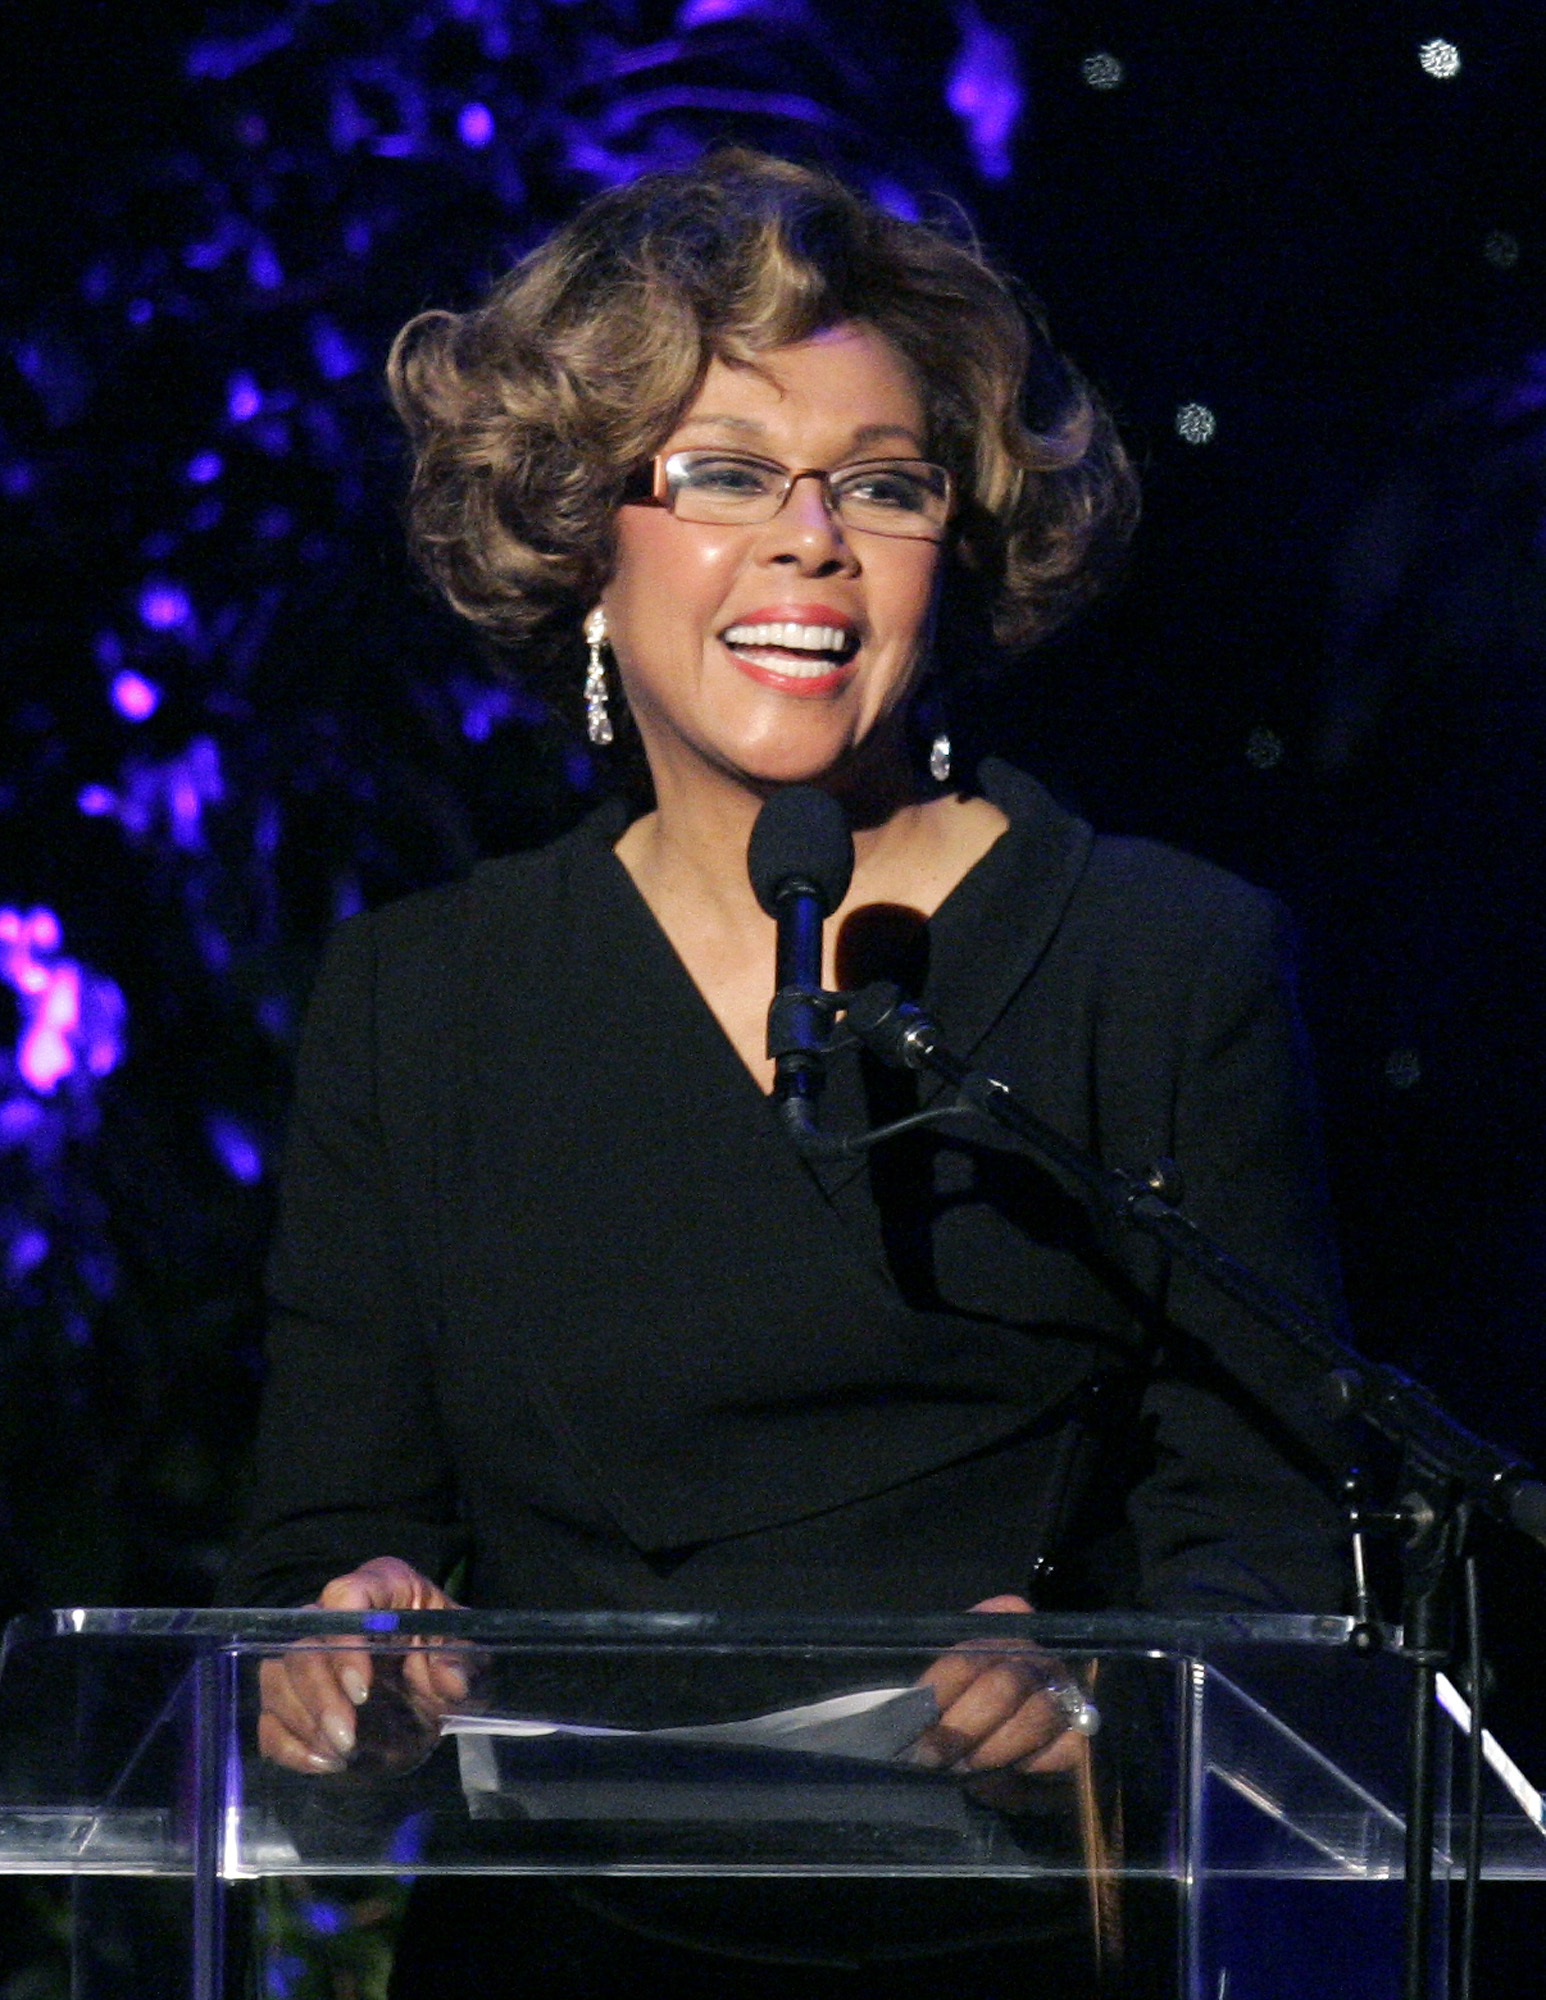 This June 14, 2007 file photo shows Diahann Carroll speaking at the 2007 Crystal and Lucy Awards in Beverly Hills, Calif. Carroll died, Friday, Oct. 4, 2019, at her home in Los Angeles after a long bout with cancer.  She was 84.